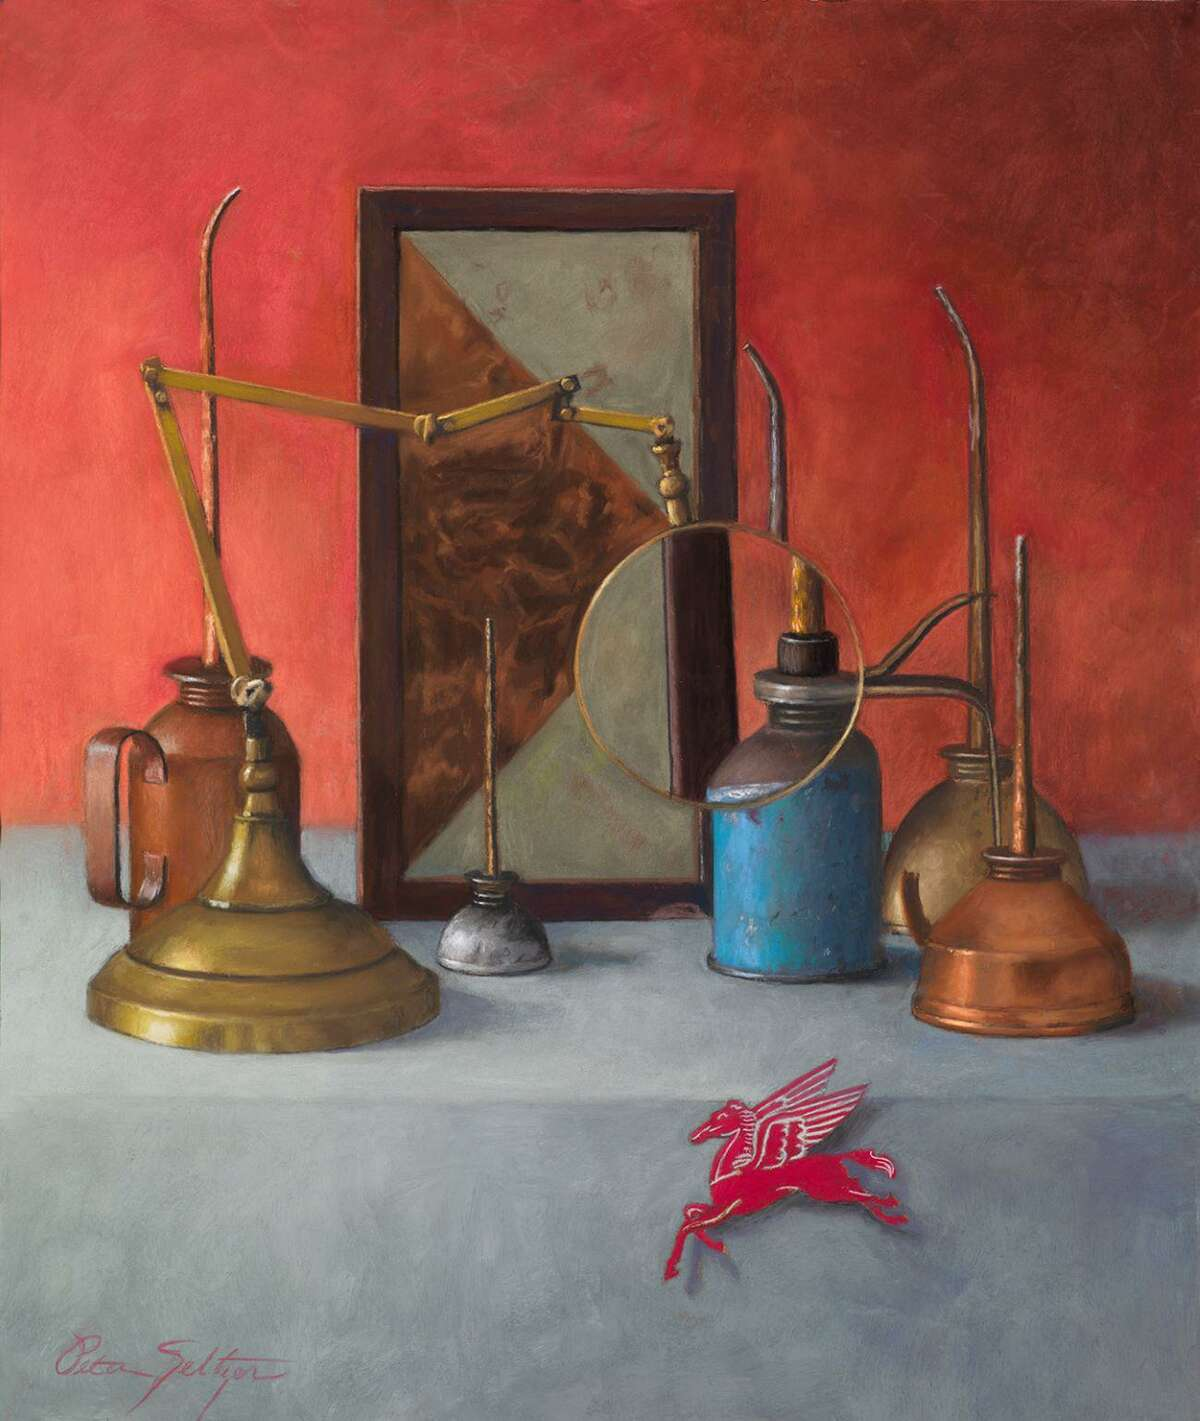 Peter Seltzer's paintings are featured in a new show at Six Summit's gallery in Westbrook.